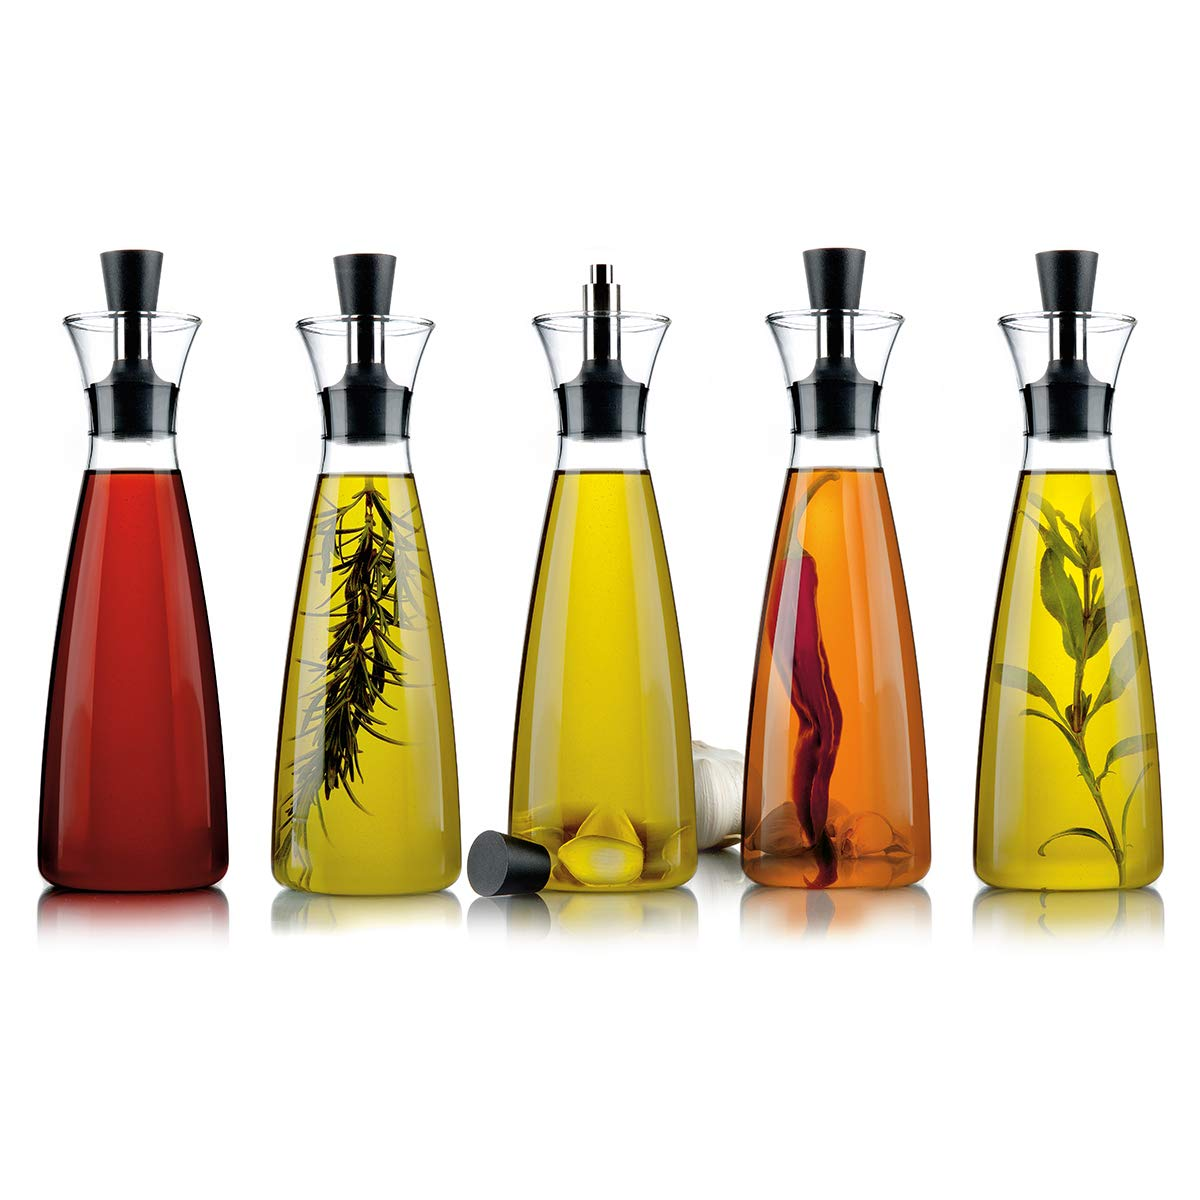 Eva Solo Oil And Vinegar Carafe, Drip-Free Eva Solo A/S 567685